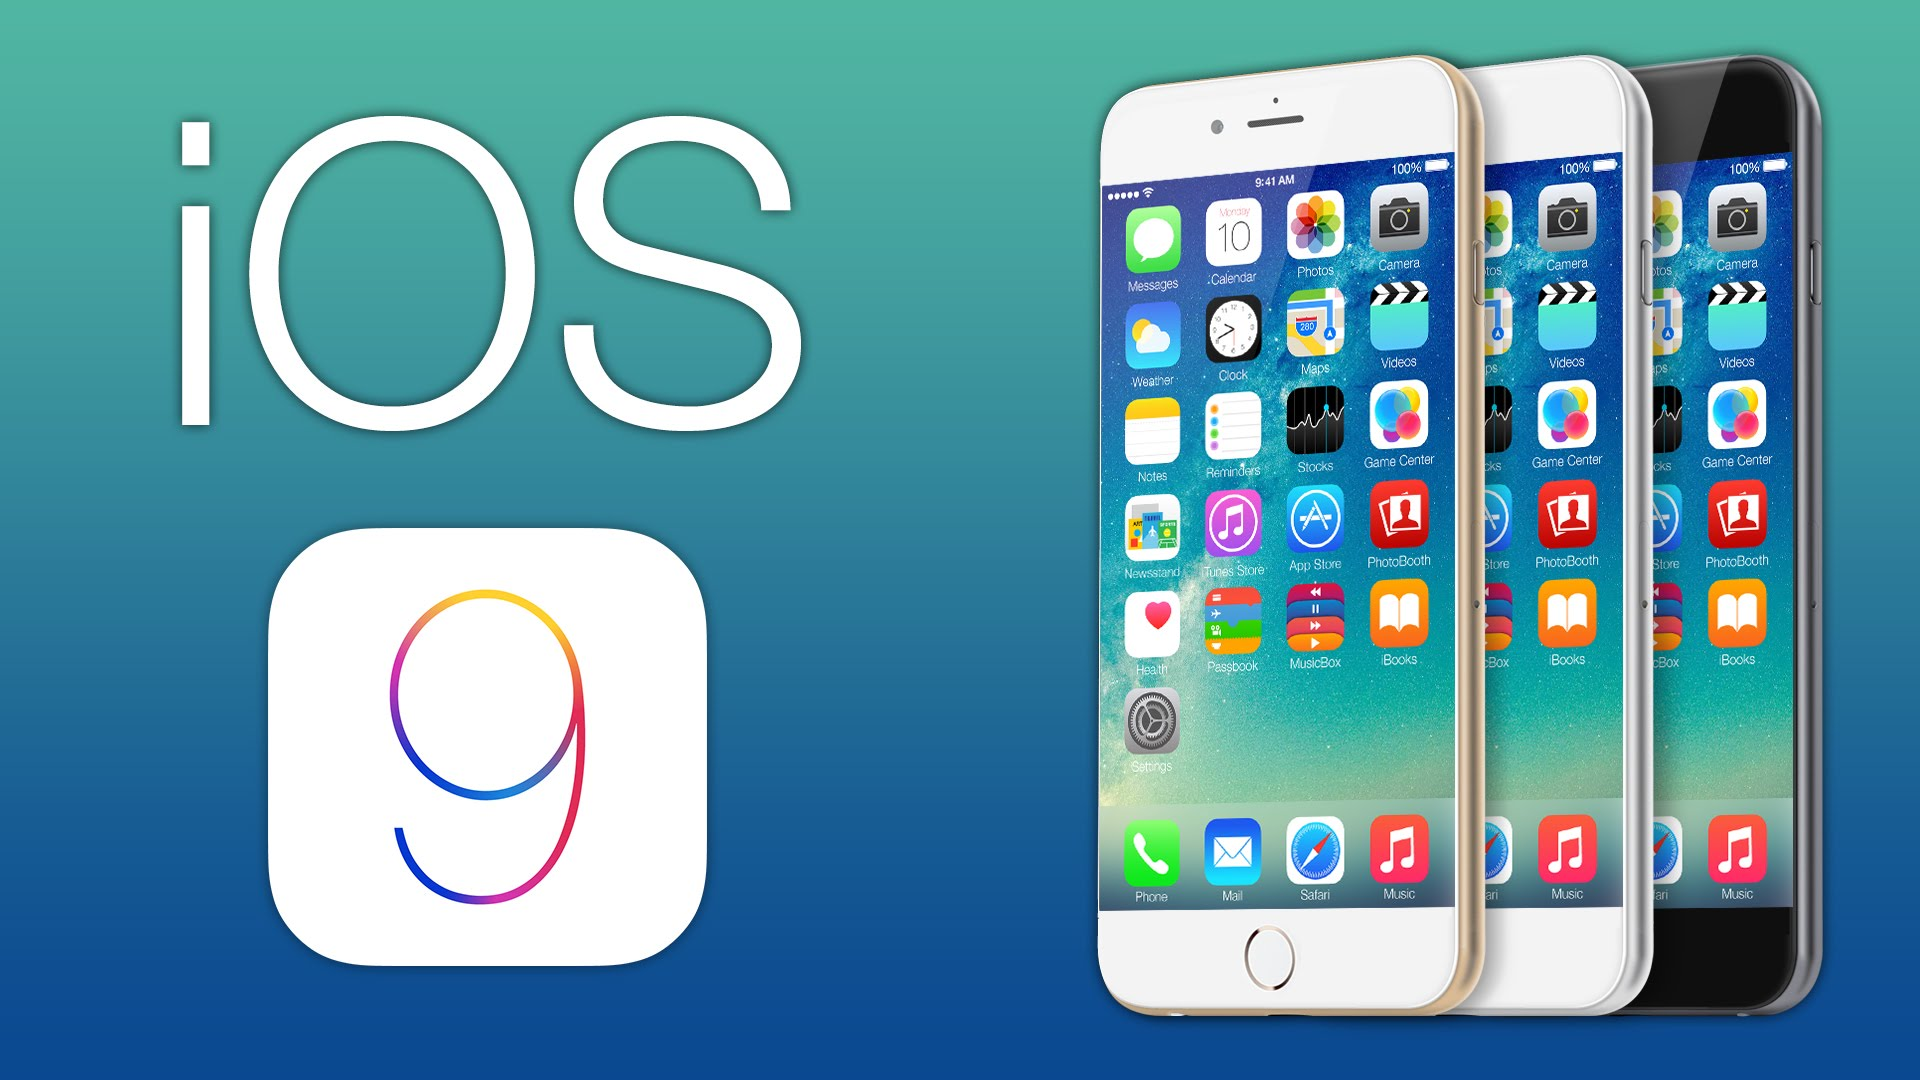 Apple's iOS 9 and its features